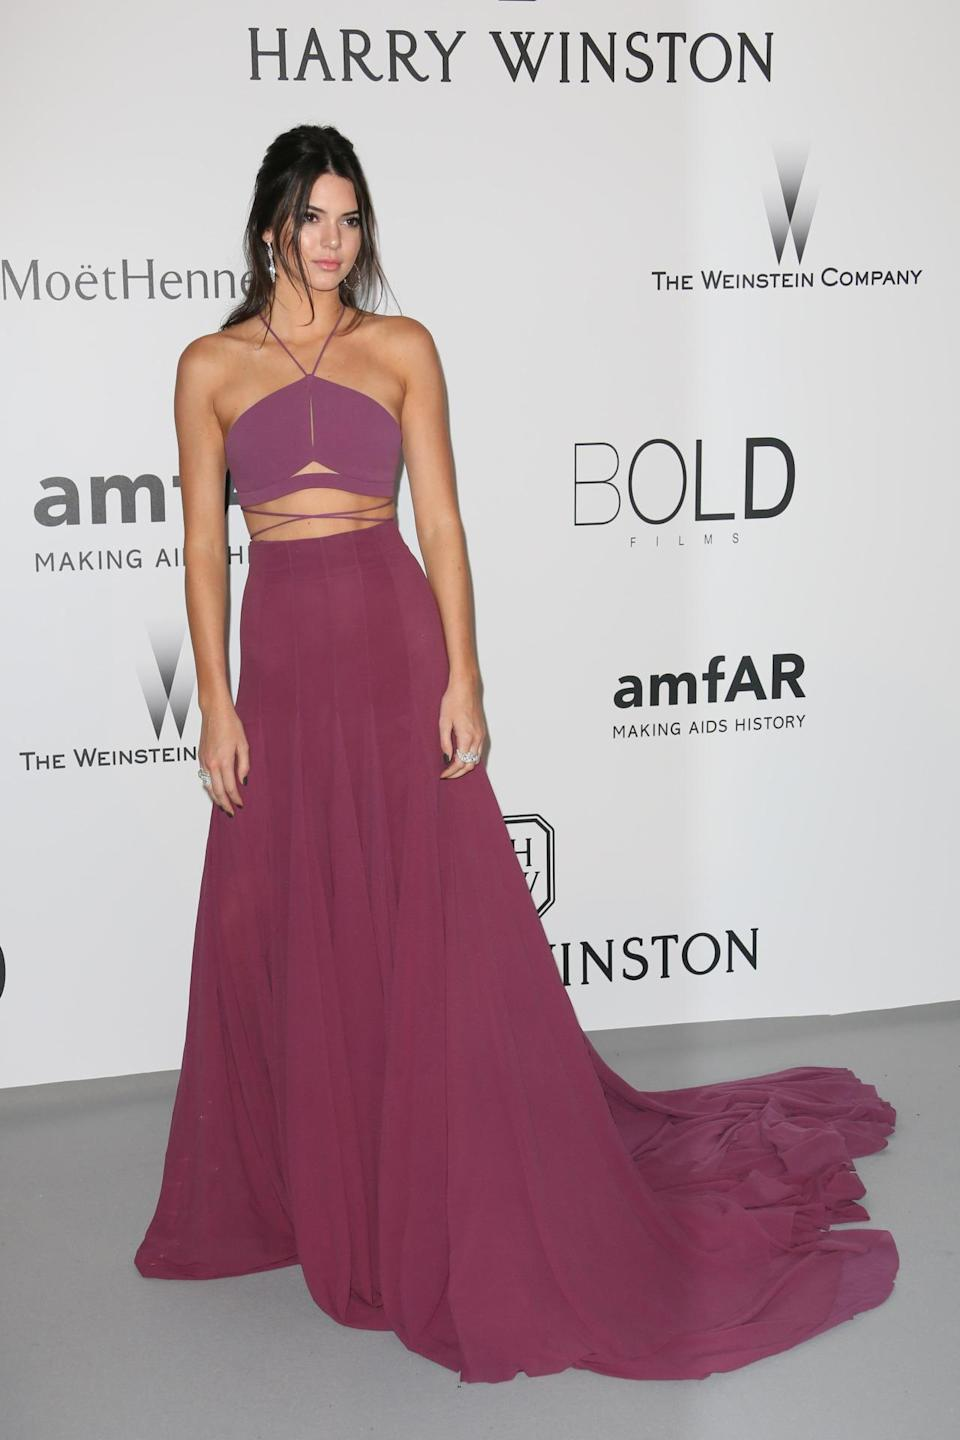 Jenner basically won the second night of Cannes when she wore this custom Calvin Klein number. Not everyone could pull off a halter crop top with cutouts and a flowing skirt, but the model owns the look like a pro.